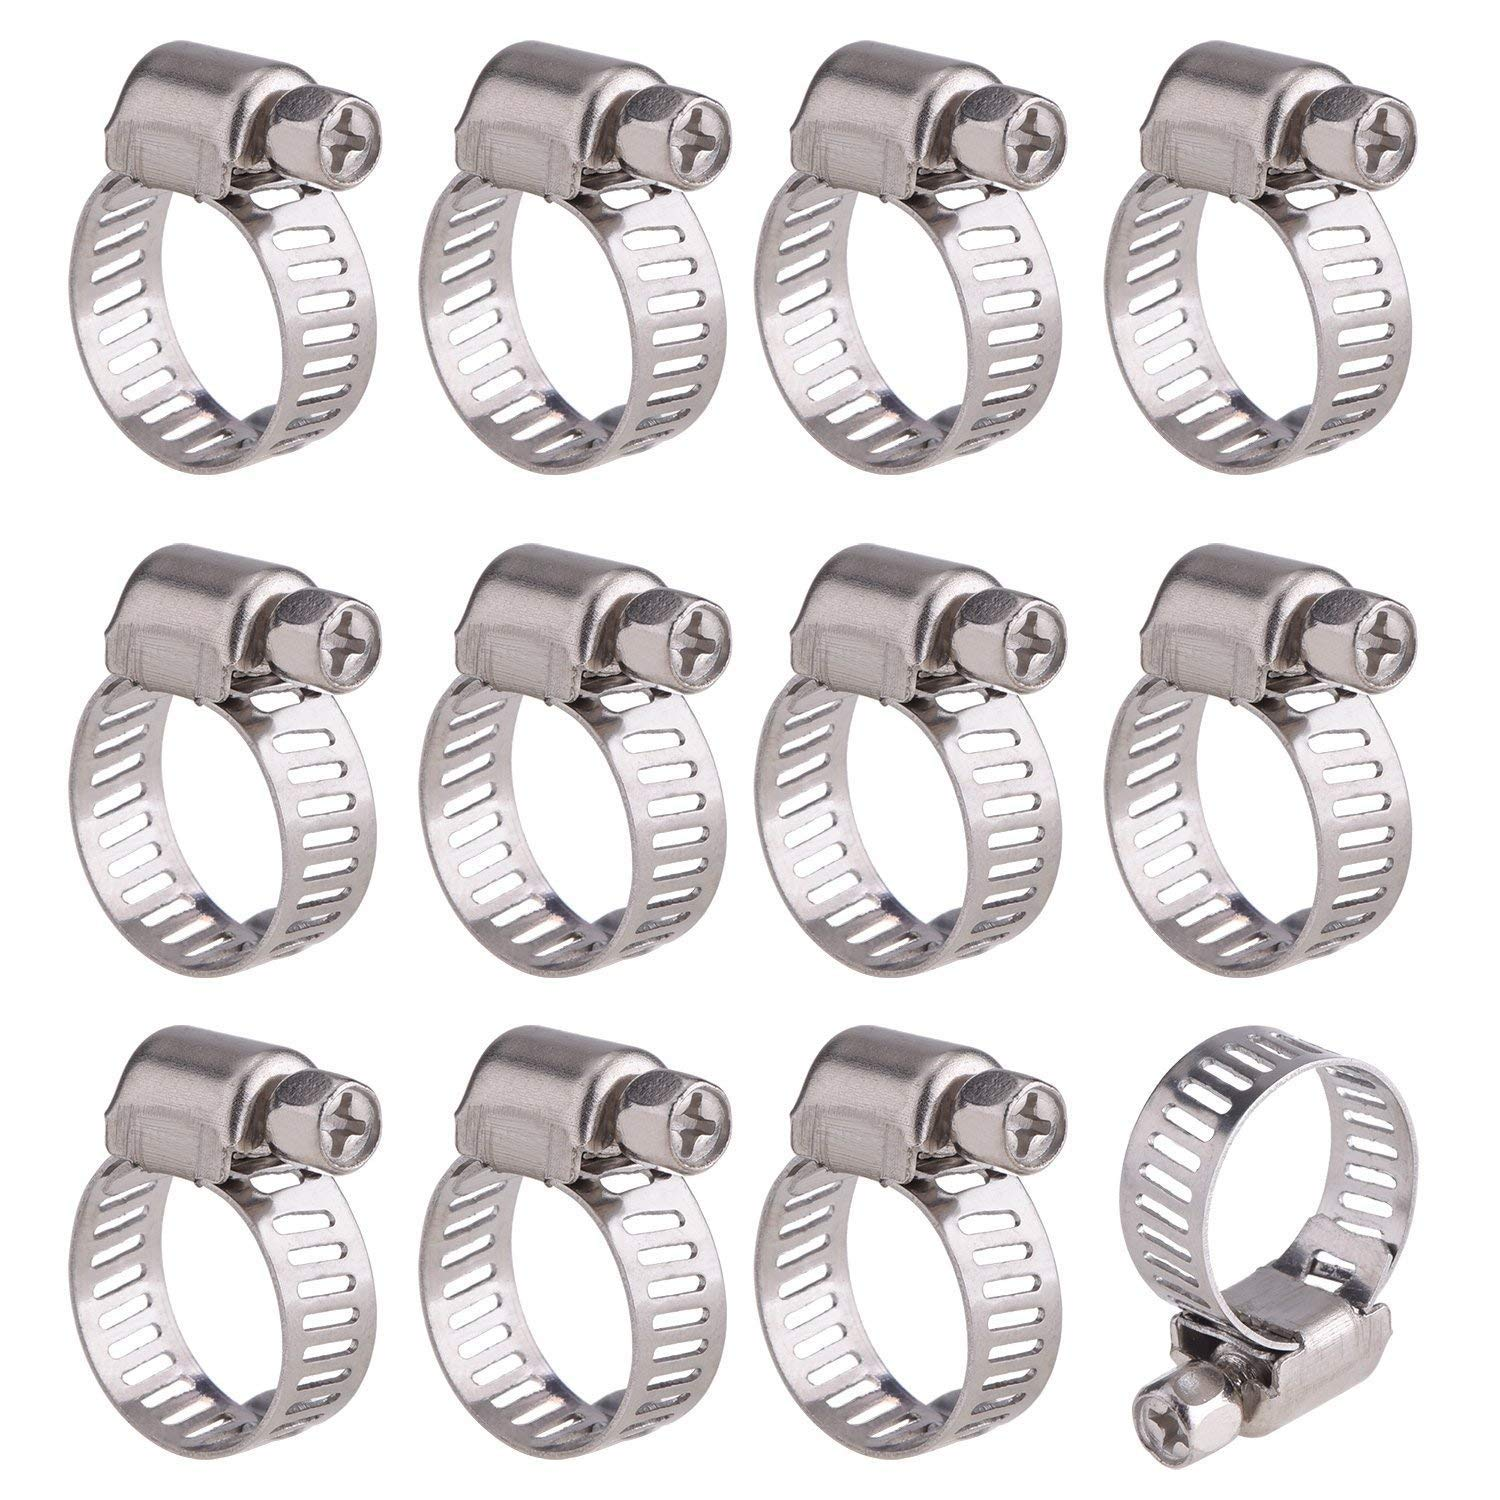 Worm Drive Hose Clamps Adjustable Stainless Steel Worm Drive Pipes Hose Clamps Clips Hose Clamps Kit(24 Pack,13-19mm)